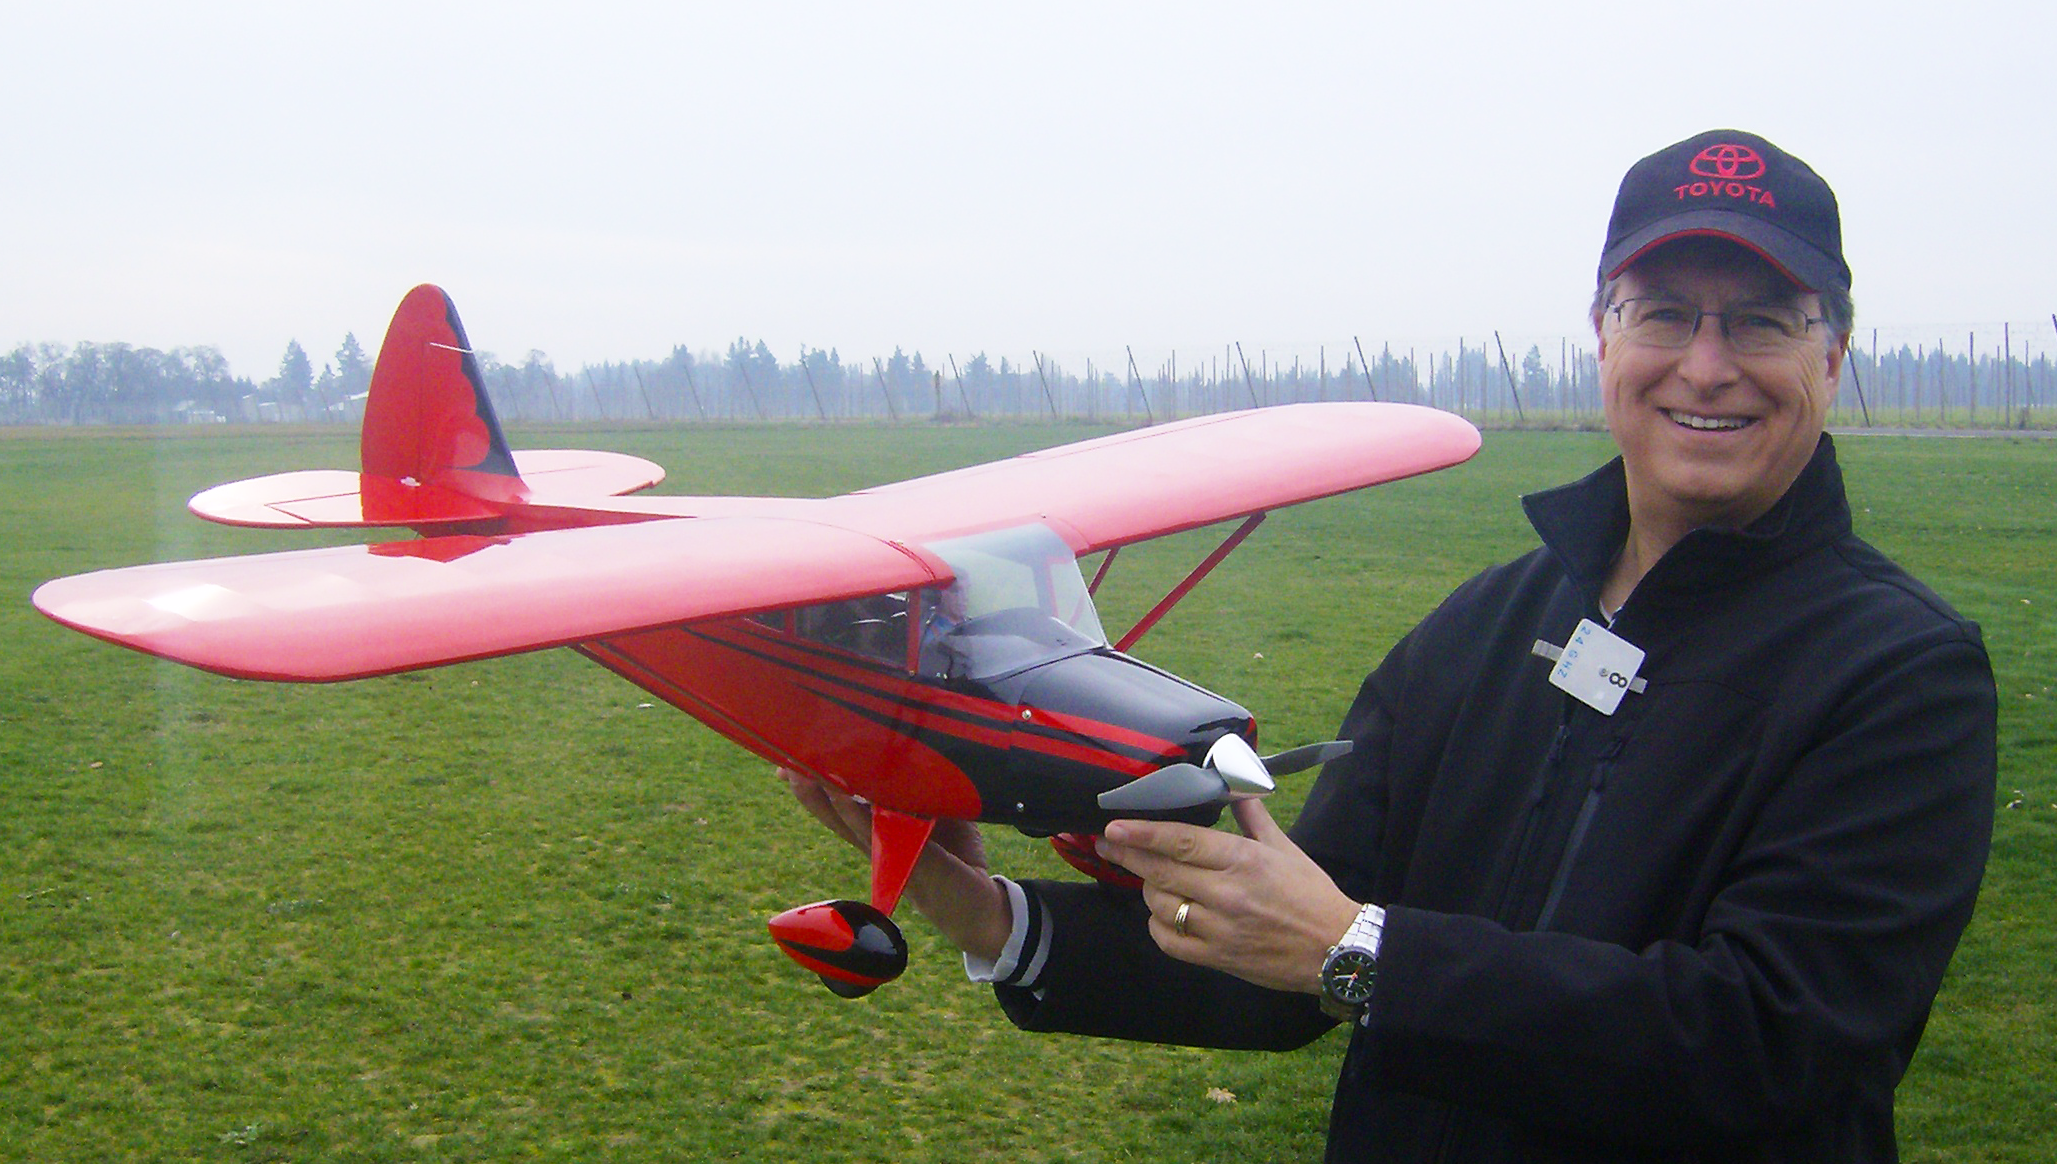 Dave Derhalli with his Horizon Hobby Pacer.